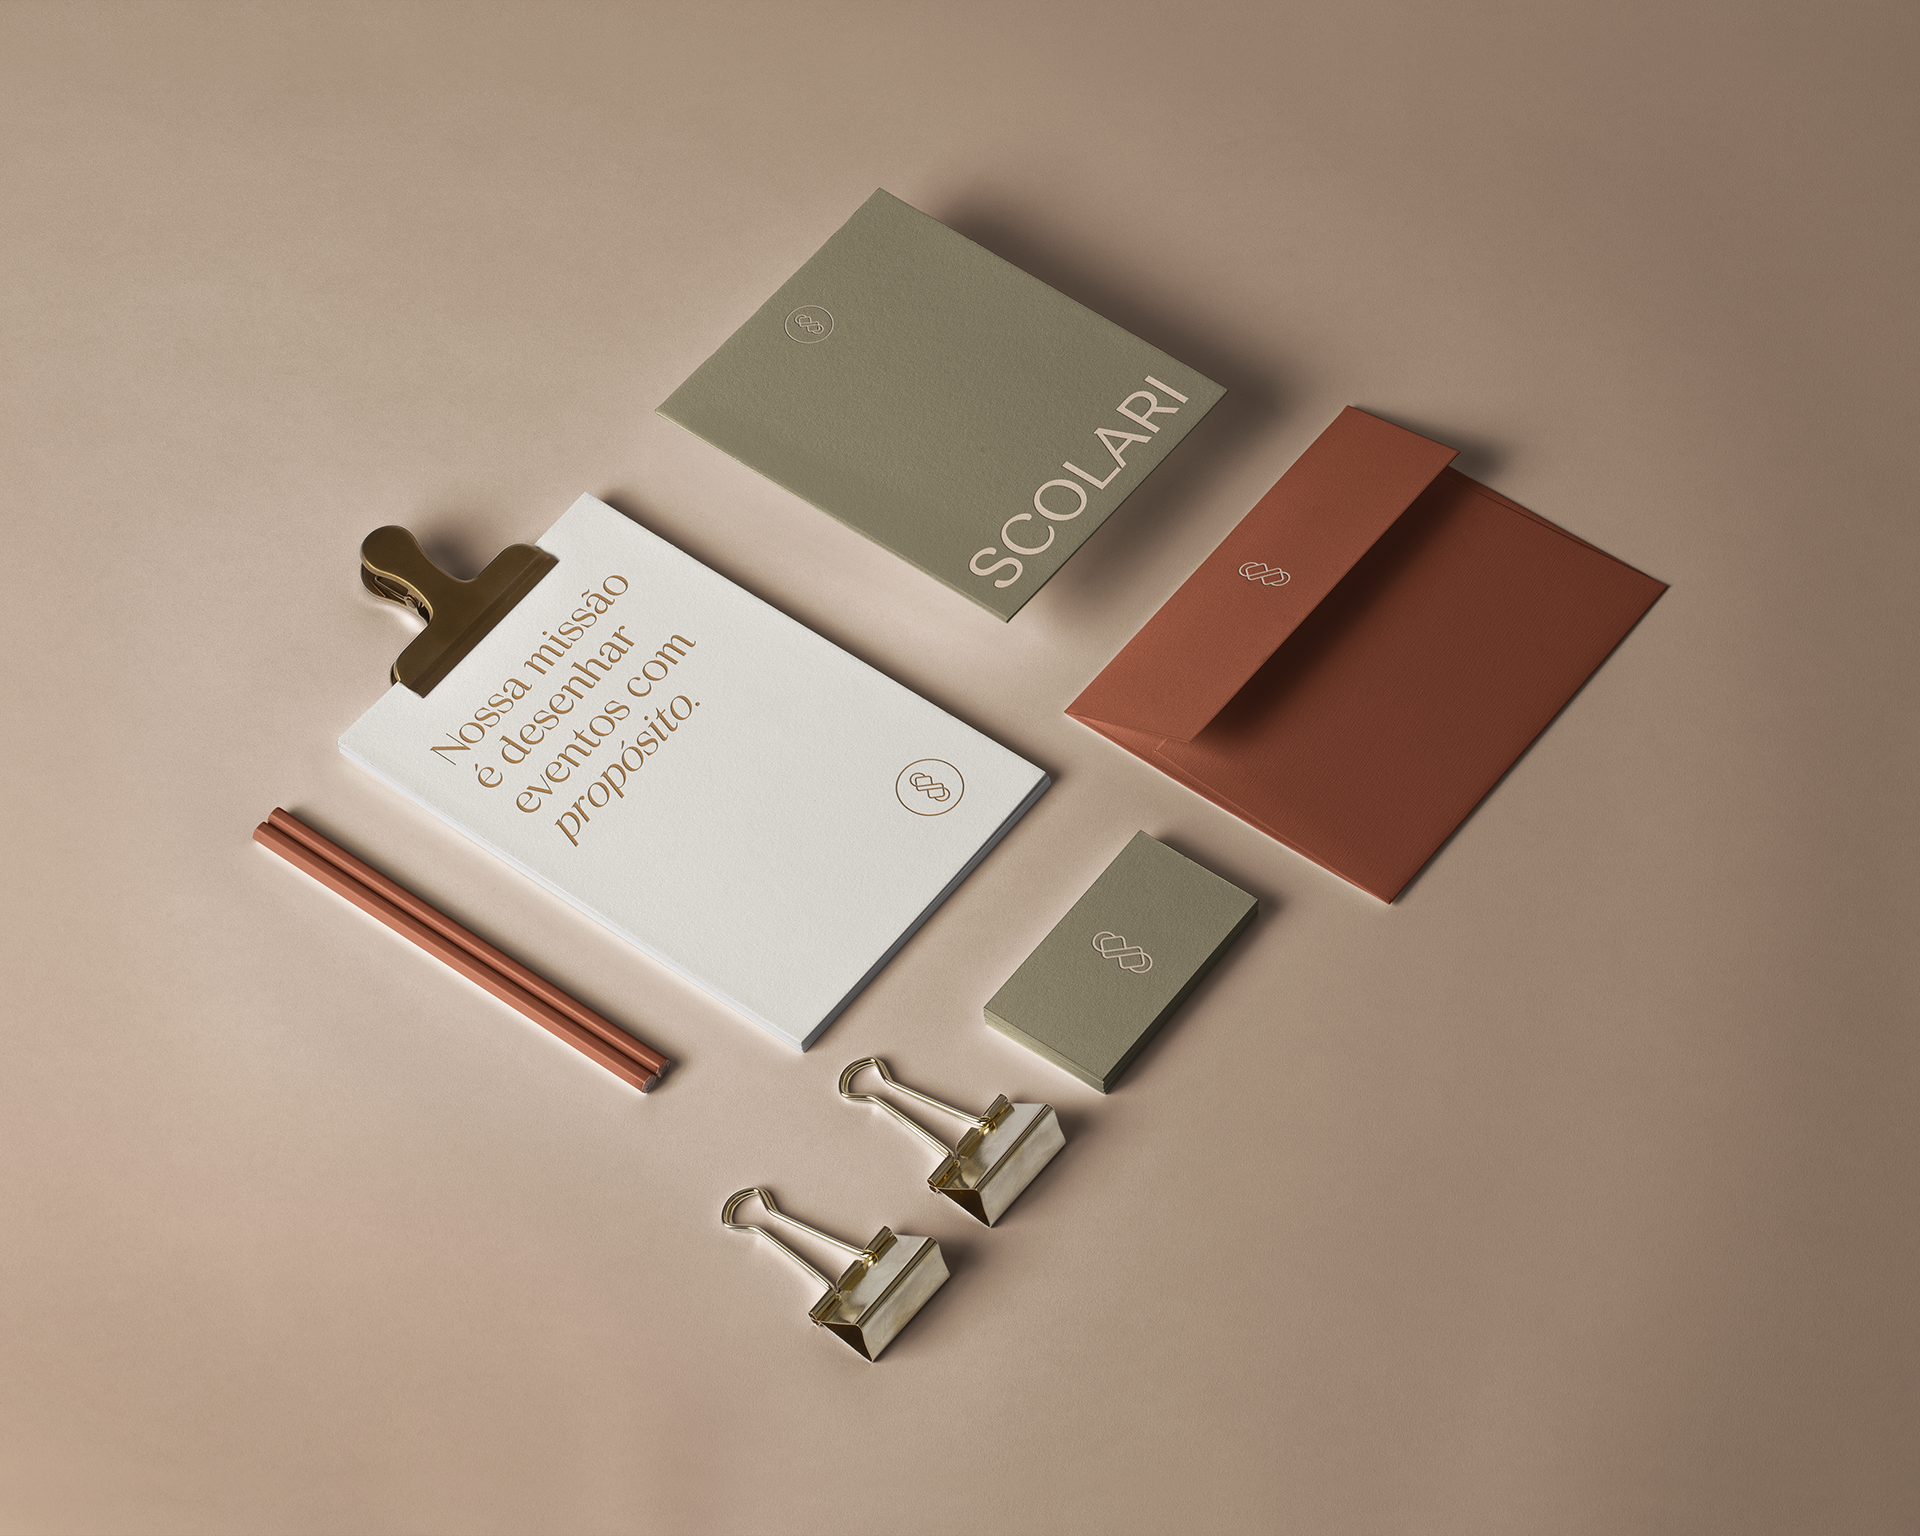 Melissa Scolari stationery design